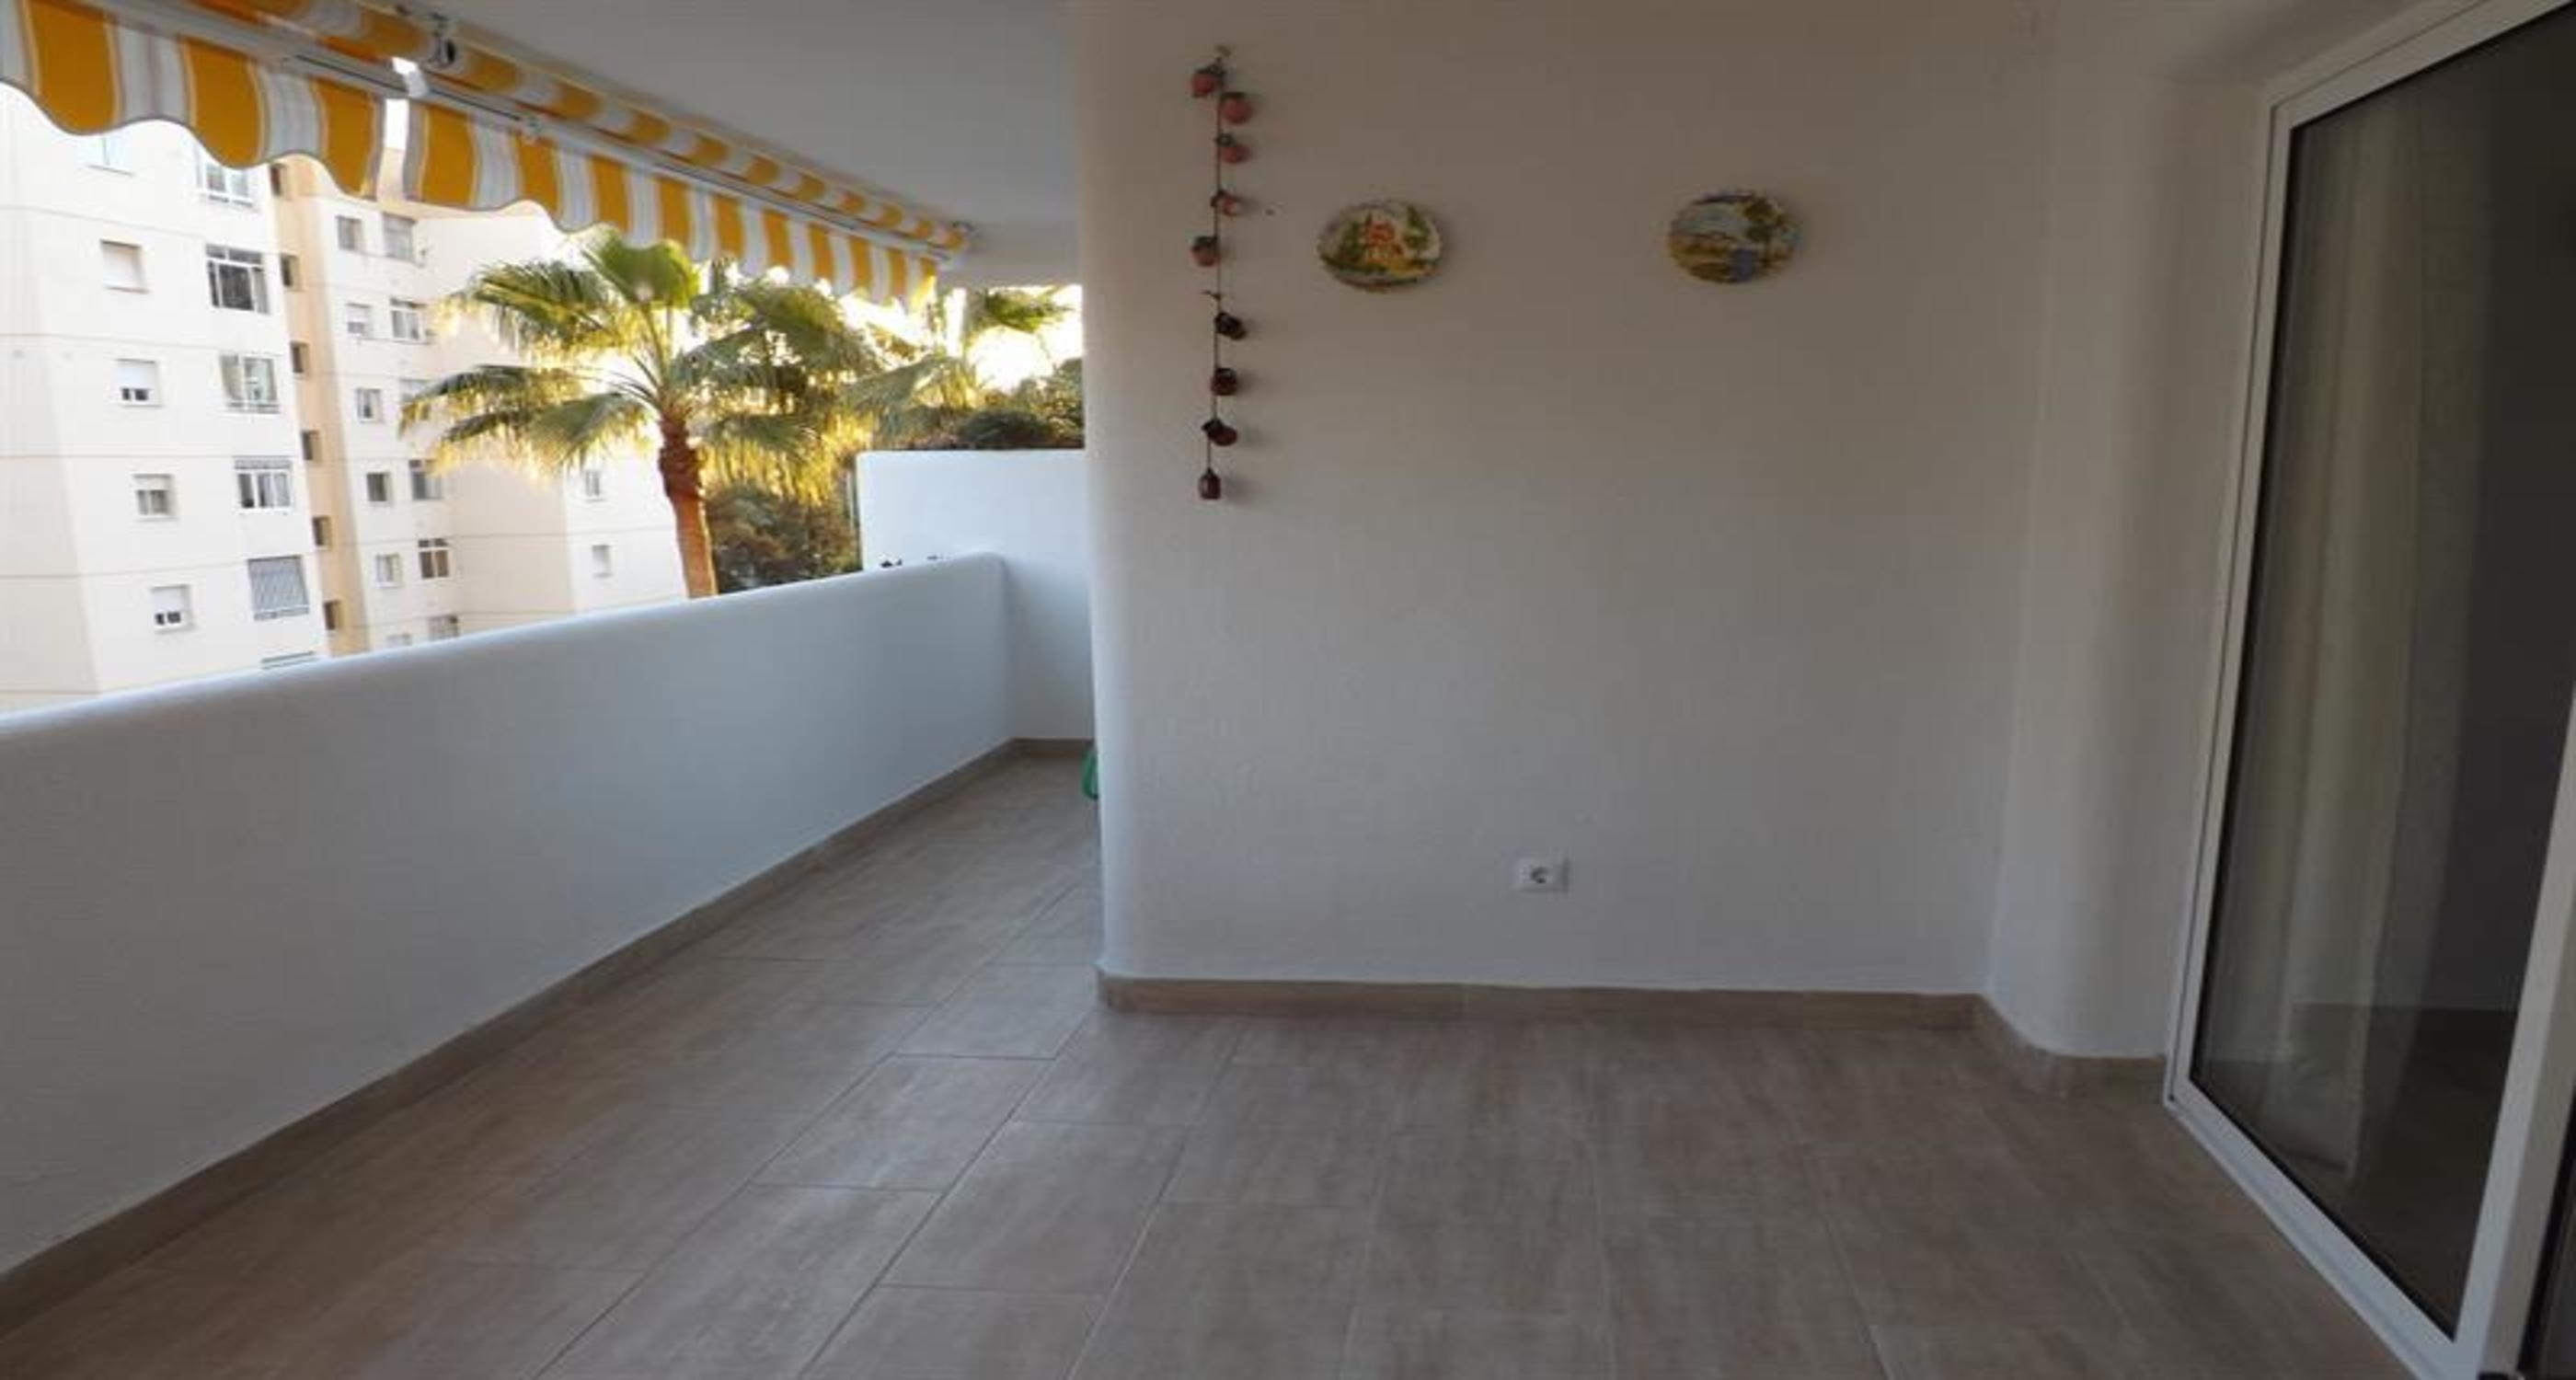 Ferienwohnung Apartment - 2 Bedrooms with Pool and WiFi - 104229 (2140293), Fuengirola, Costa del Sol, Andalusien, Spanien, Bild 12